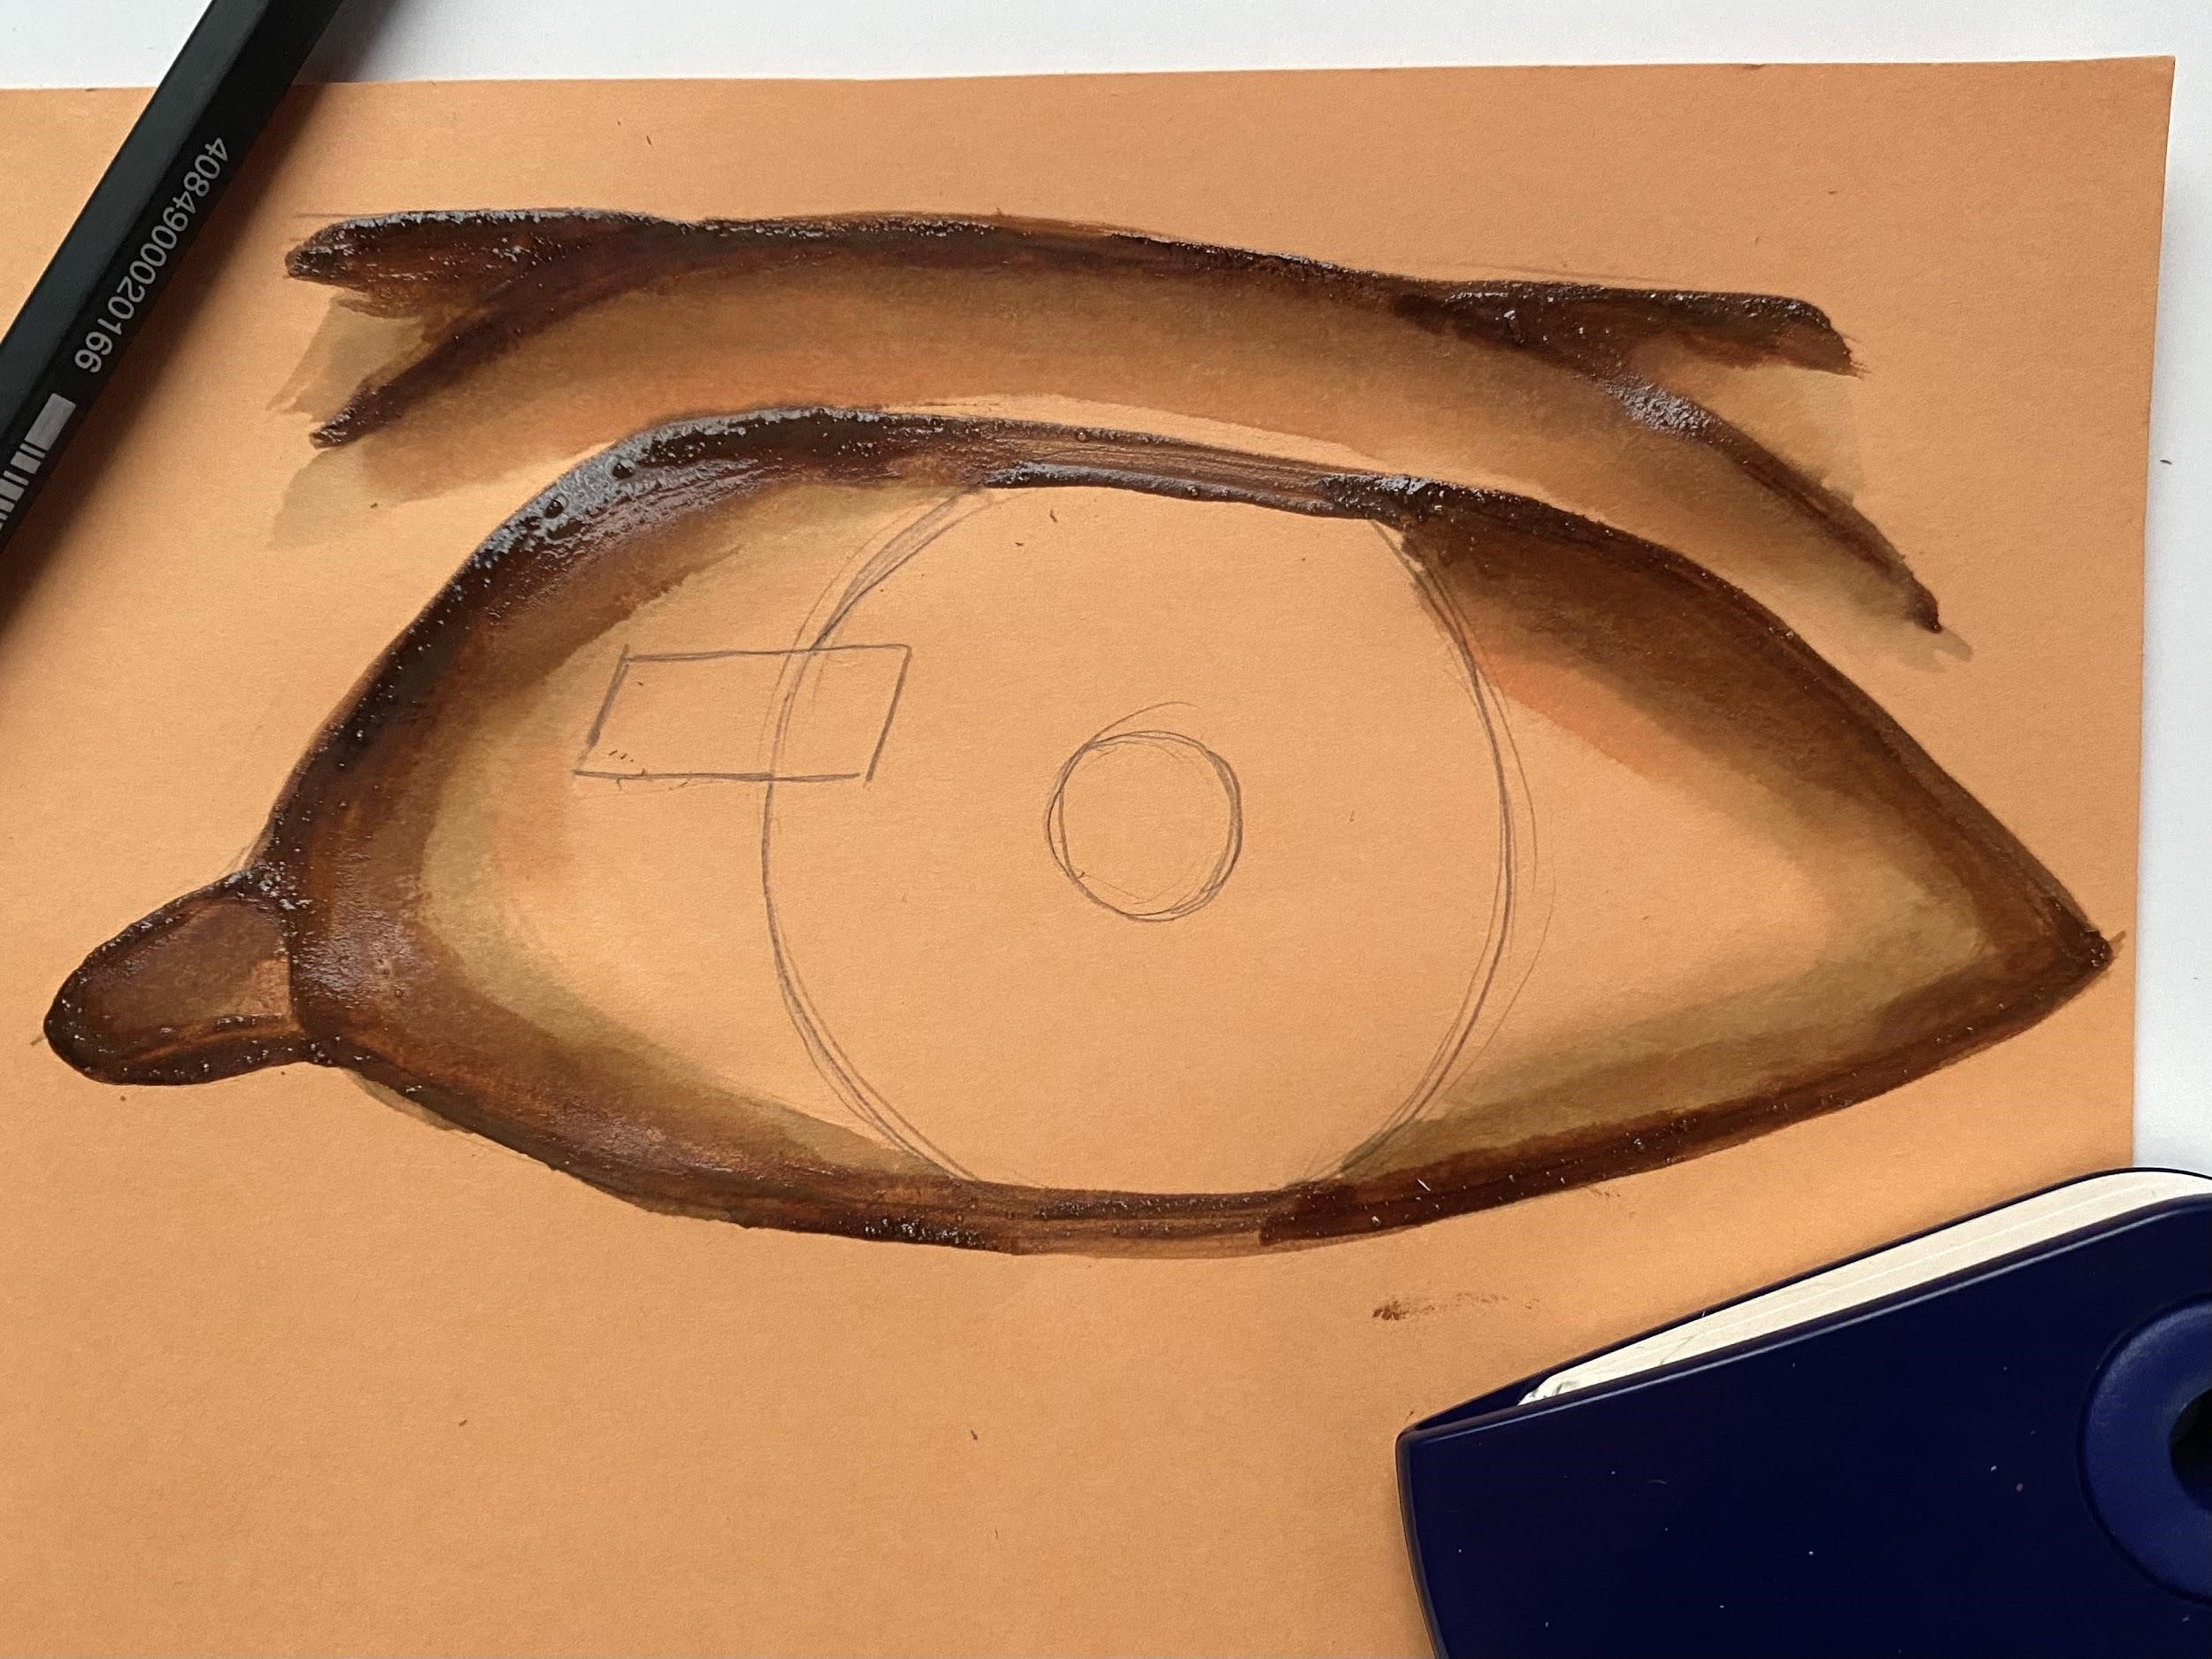 a painting of an eye